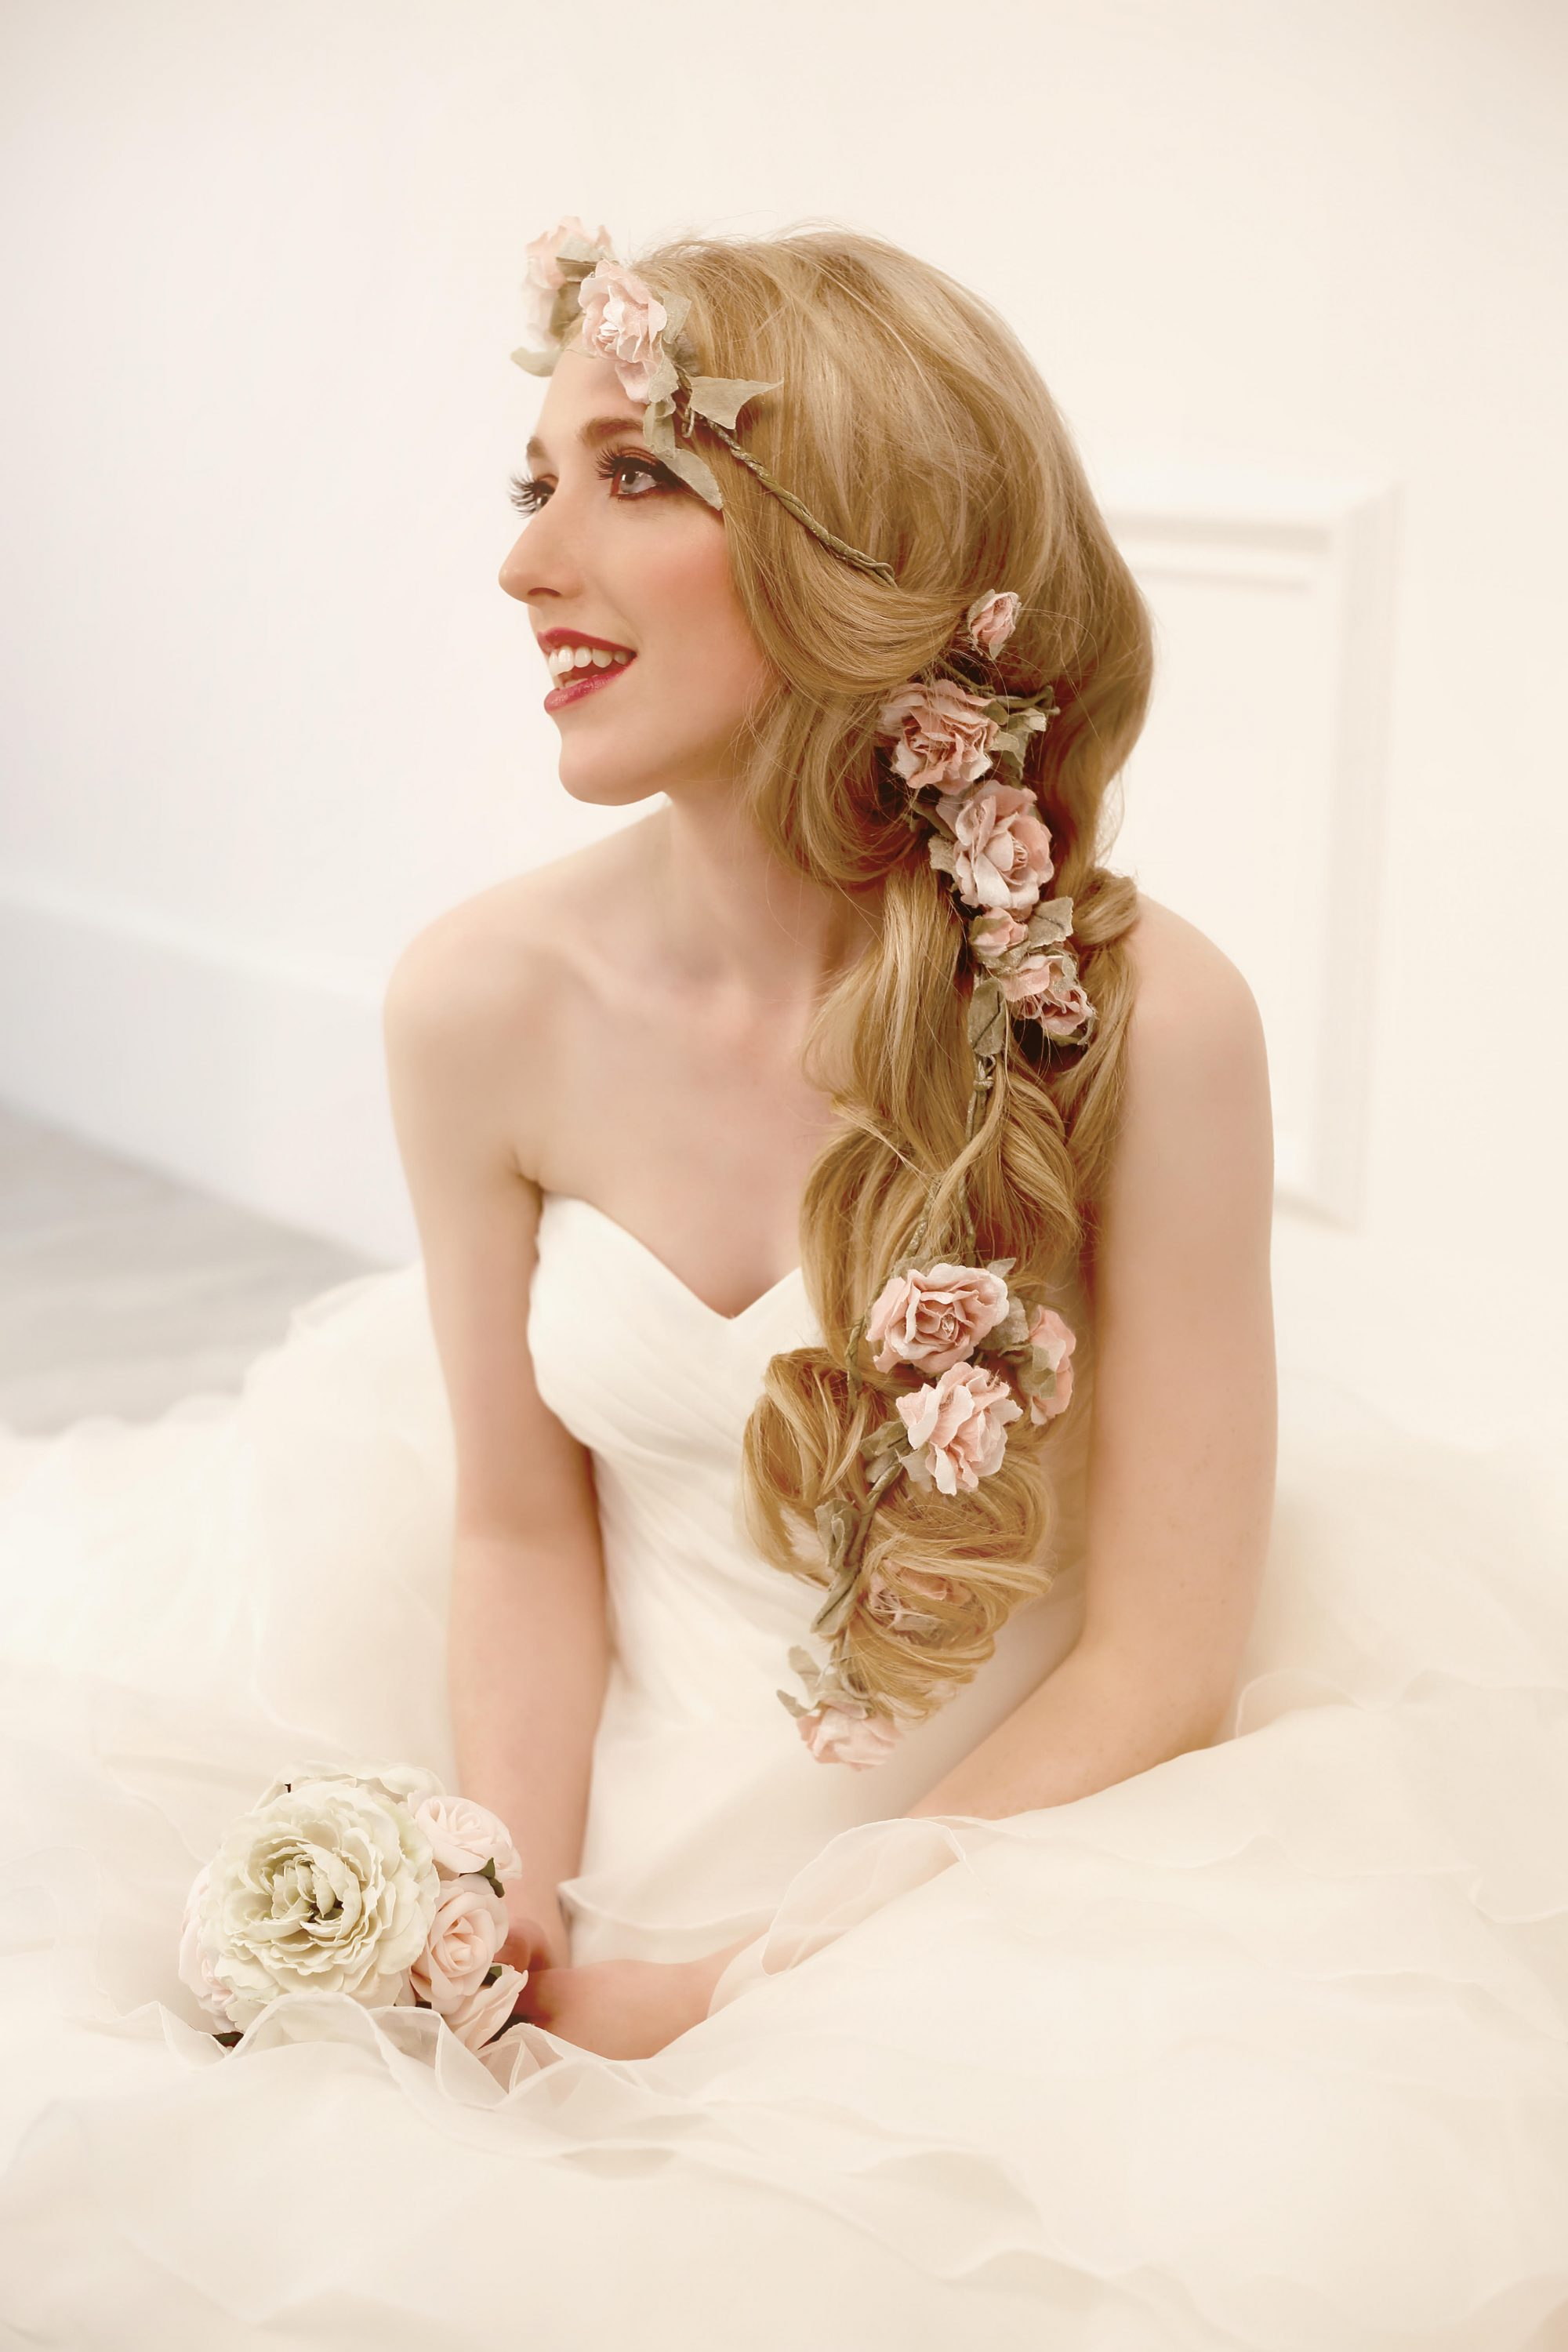 Great Lengths long hair wedding hair style suggestion